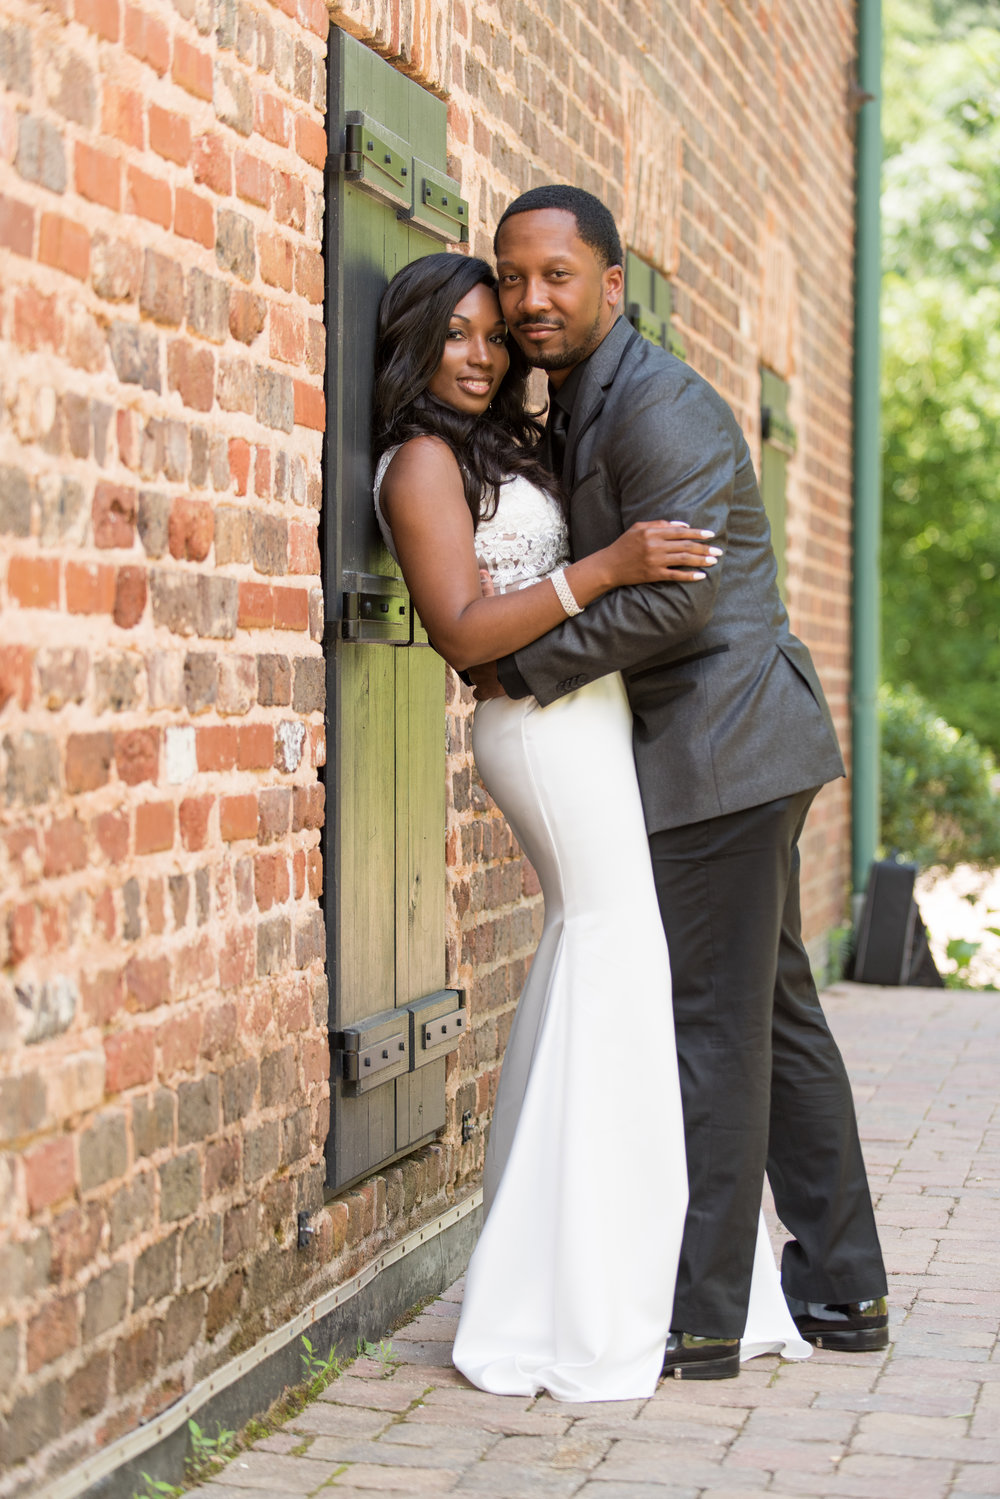 Toya+Mike_Private-Leighton DaCosta Photographer-untitled-9702-2.jpg